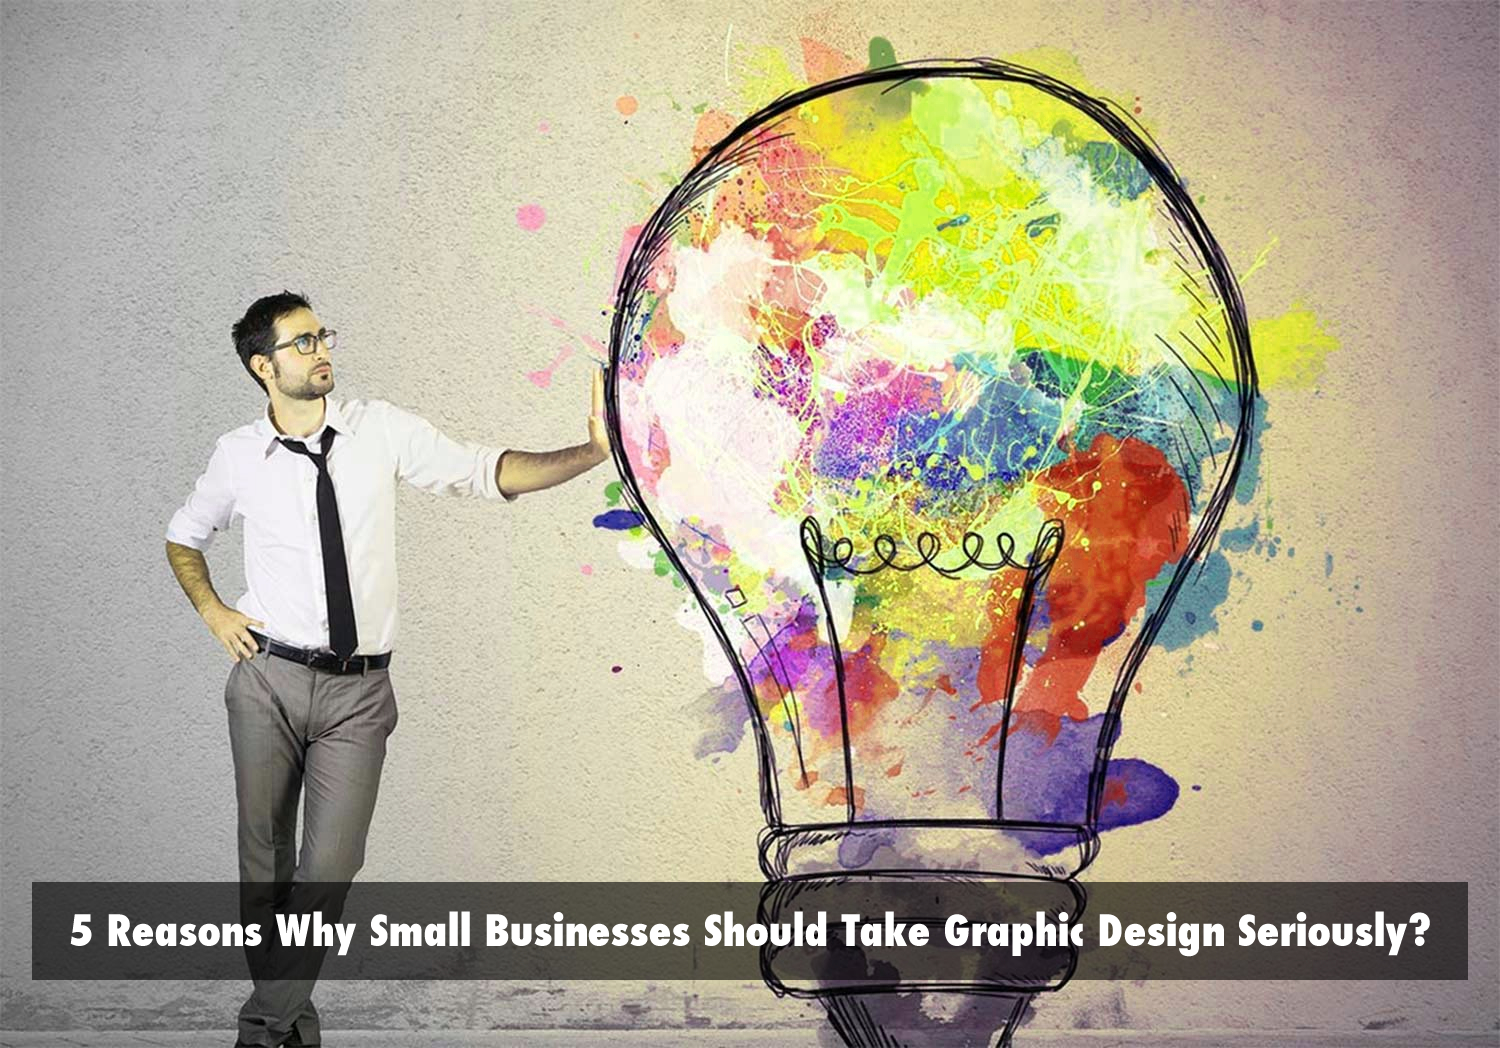 5 Reasons Why Small Businesses Should Take Graphic Design Seriously?